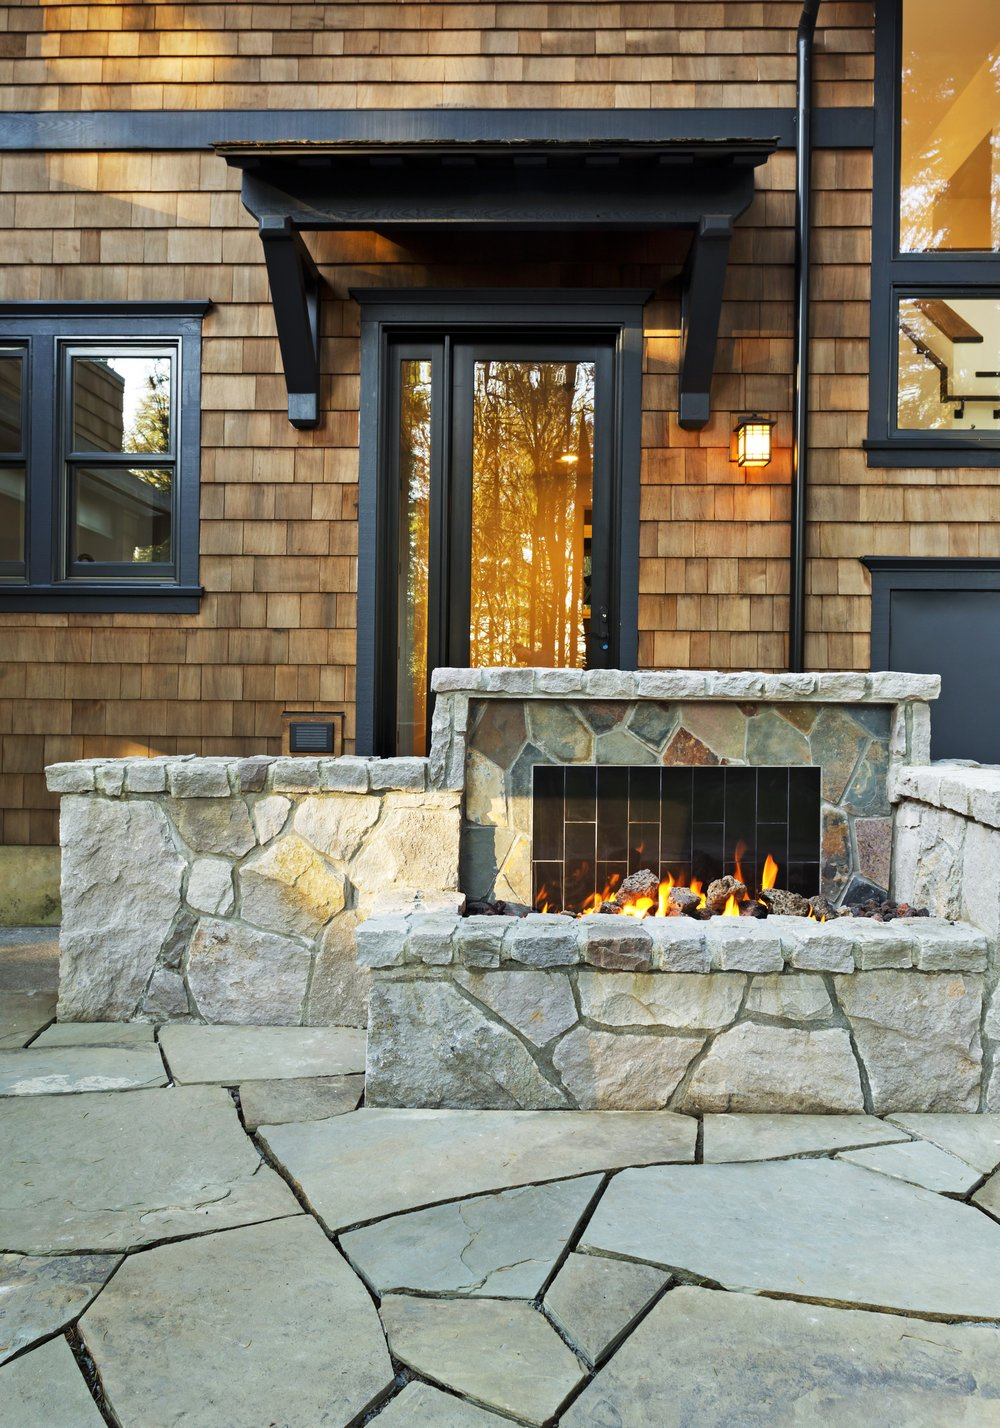 Top stone supply company for natural stone in Jackson, NJ